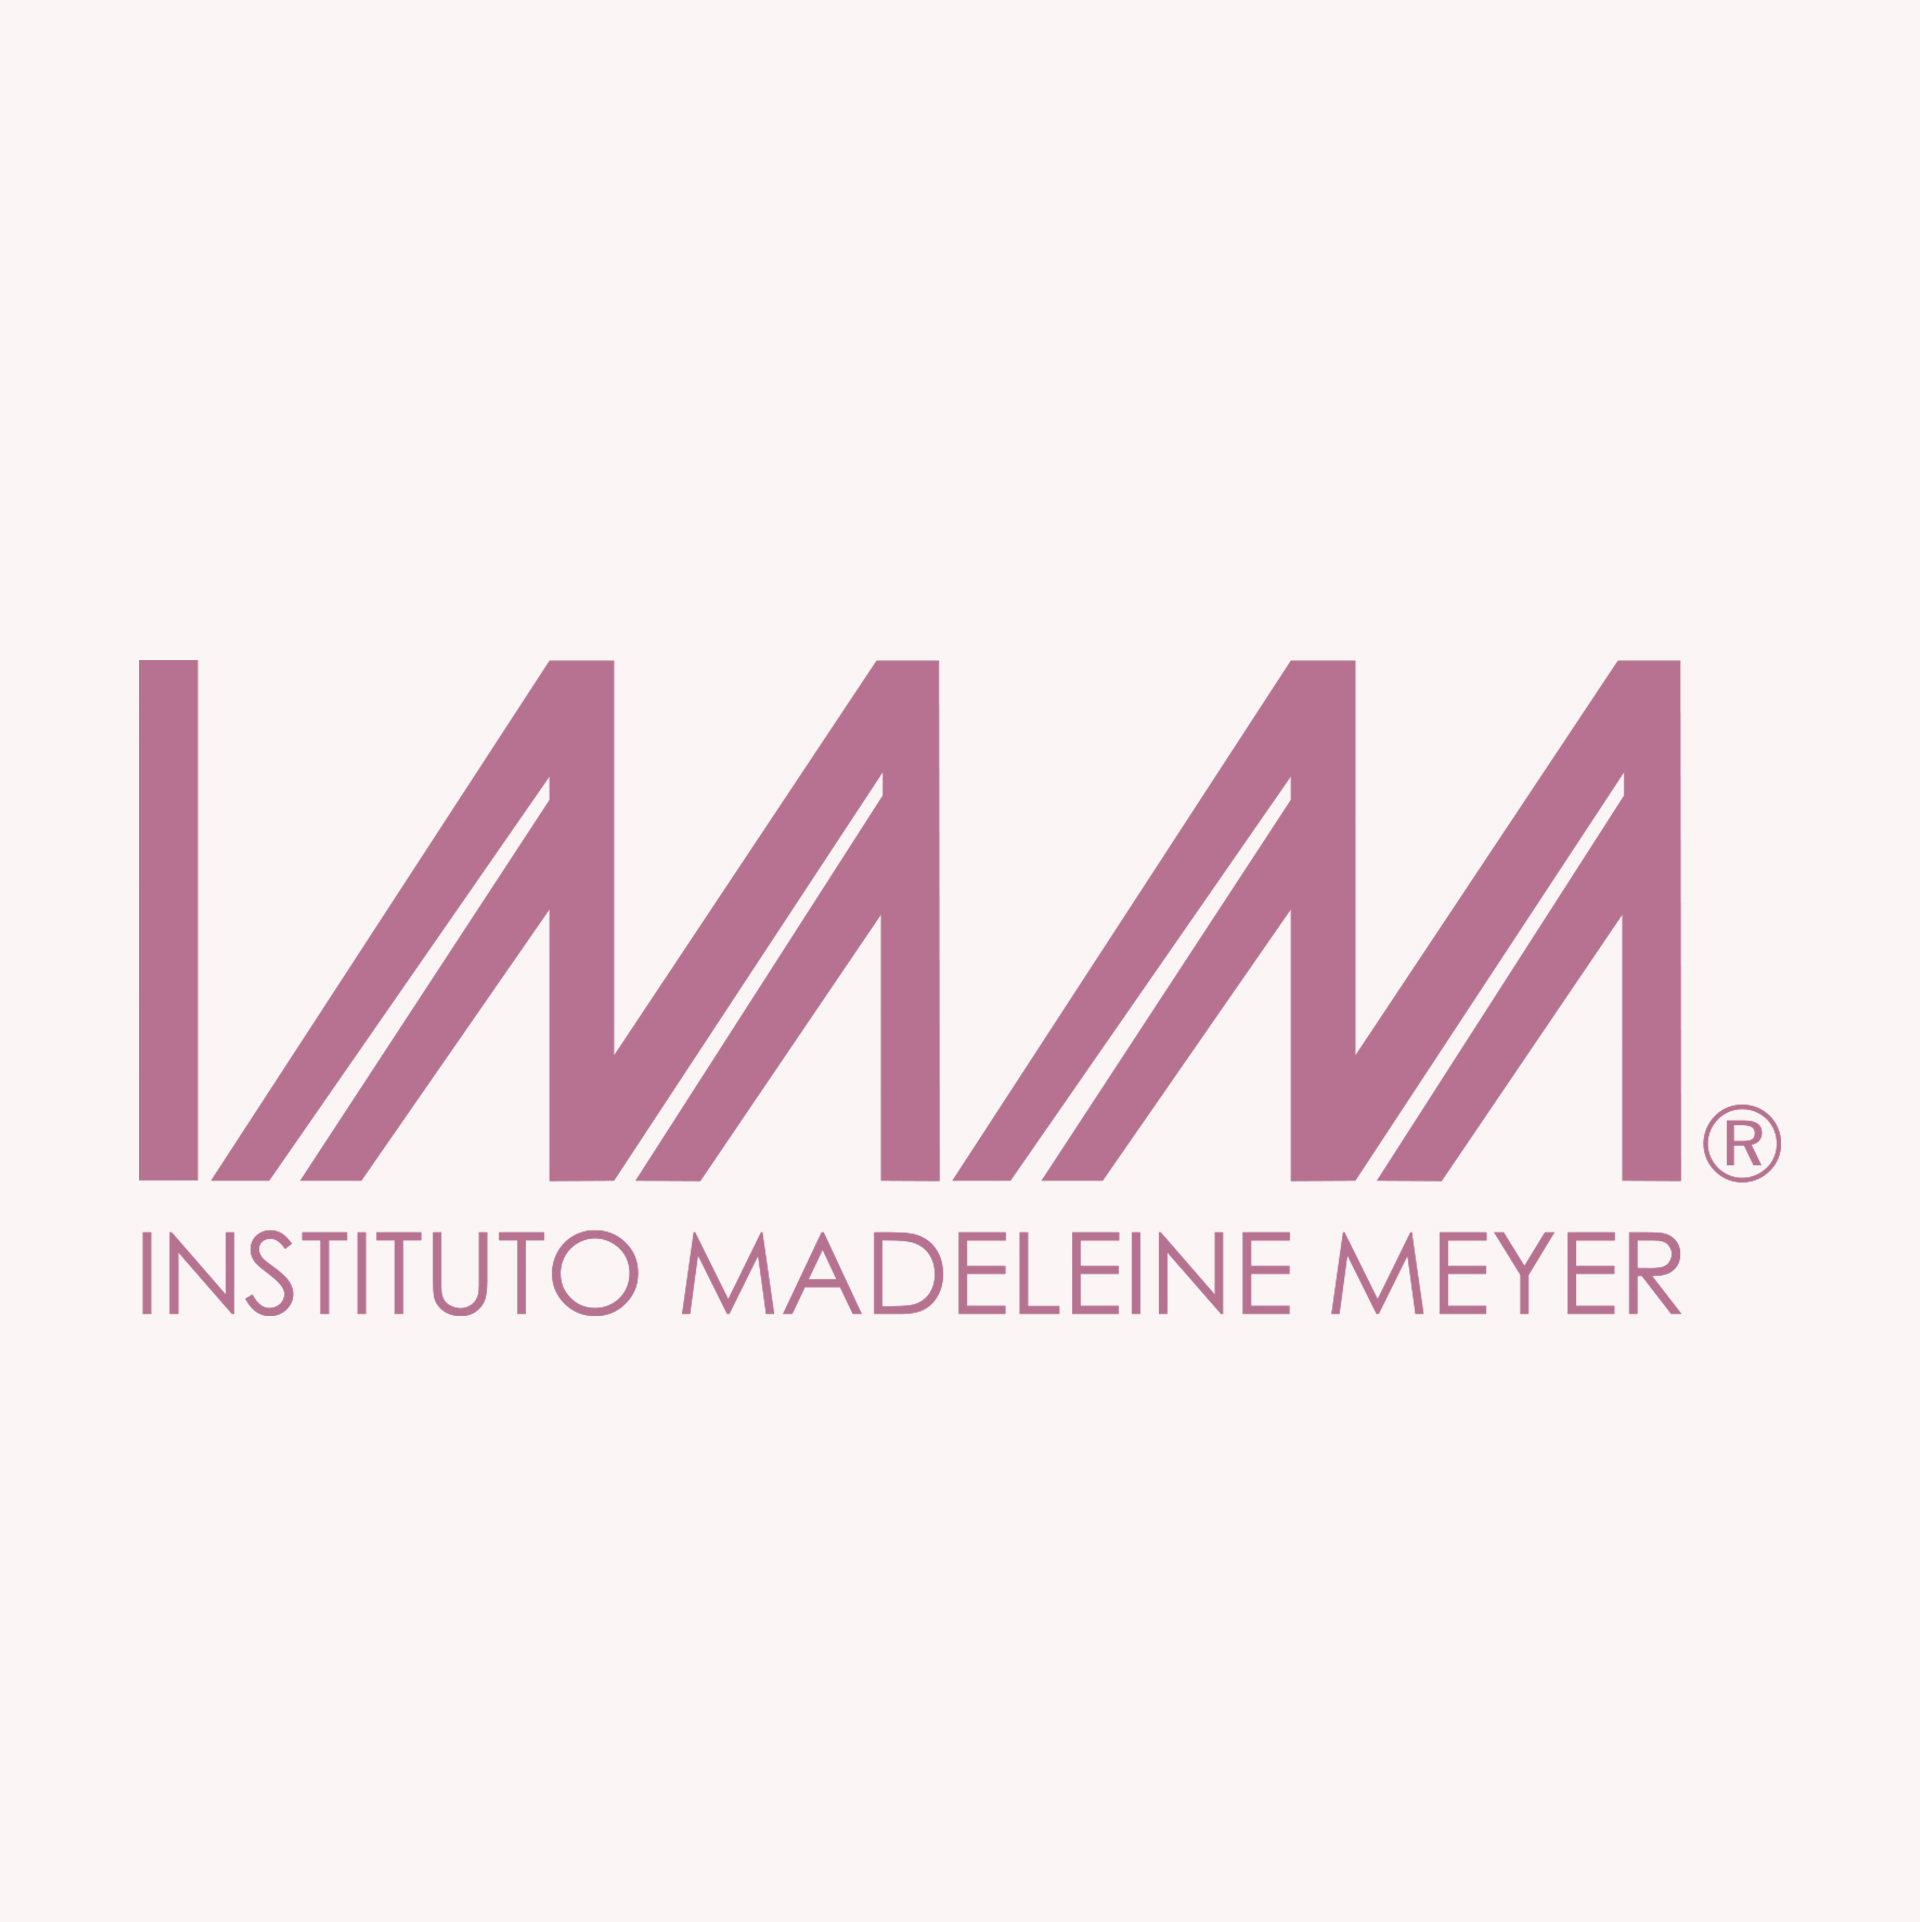 INSTITUTO MADELINE MEYER